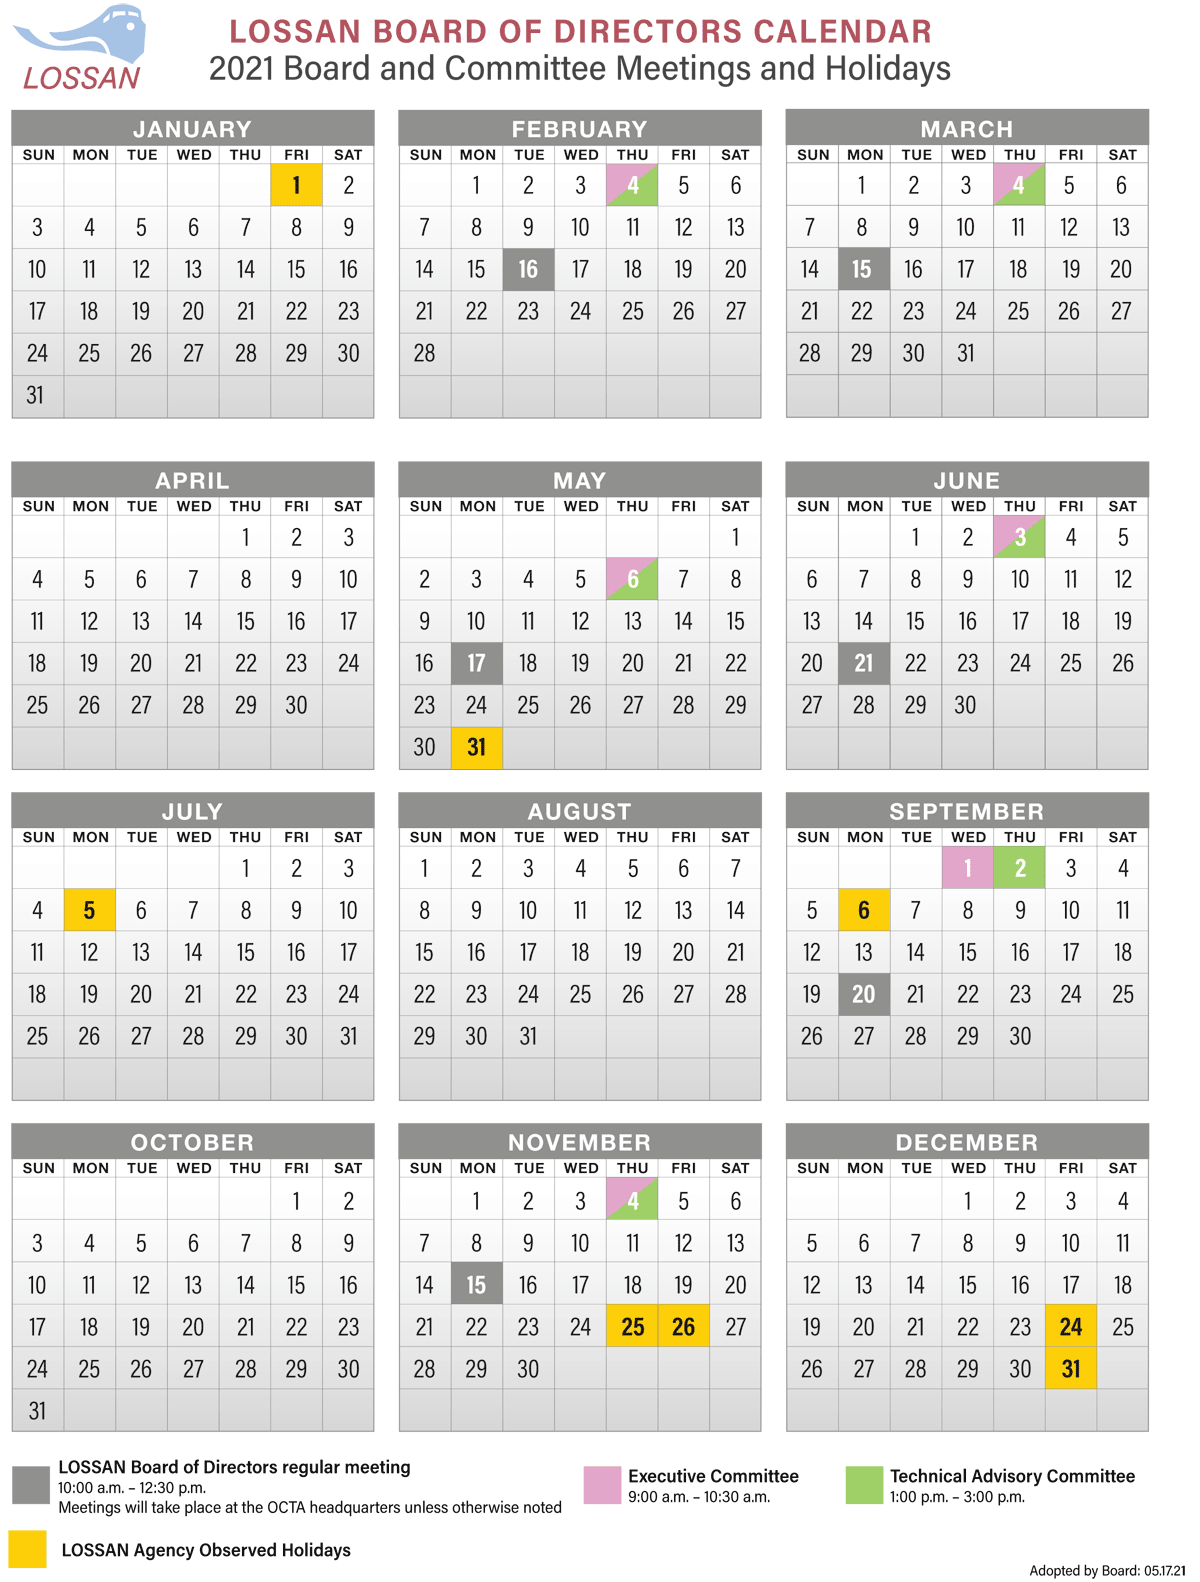 2021 LOSSAN Board Calendar